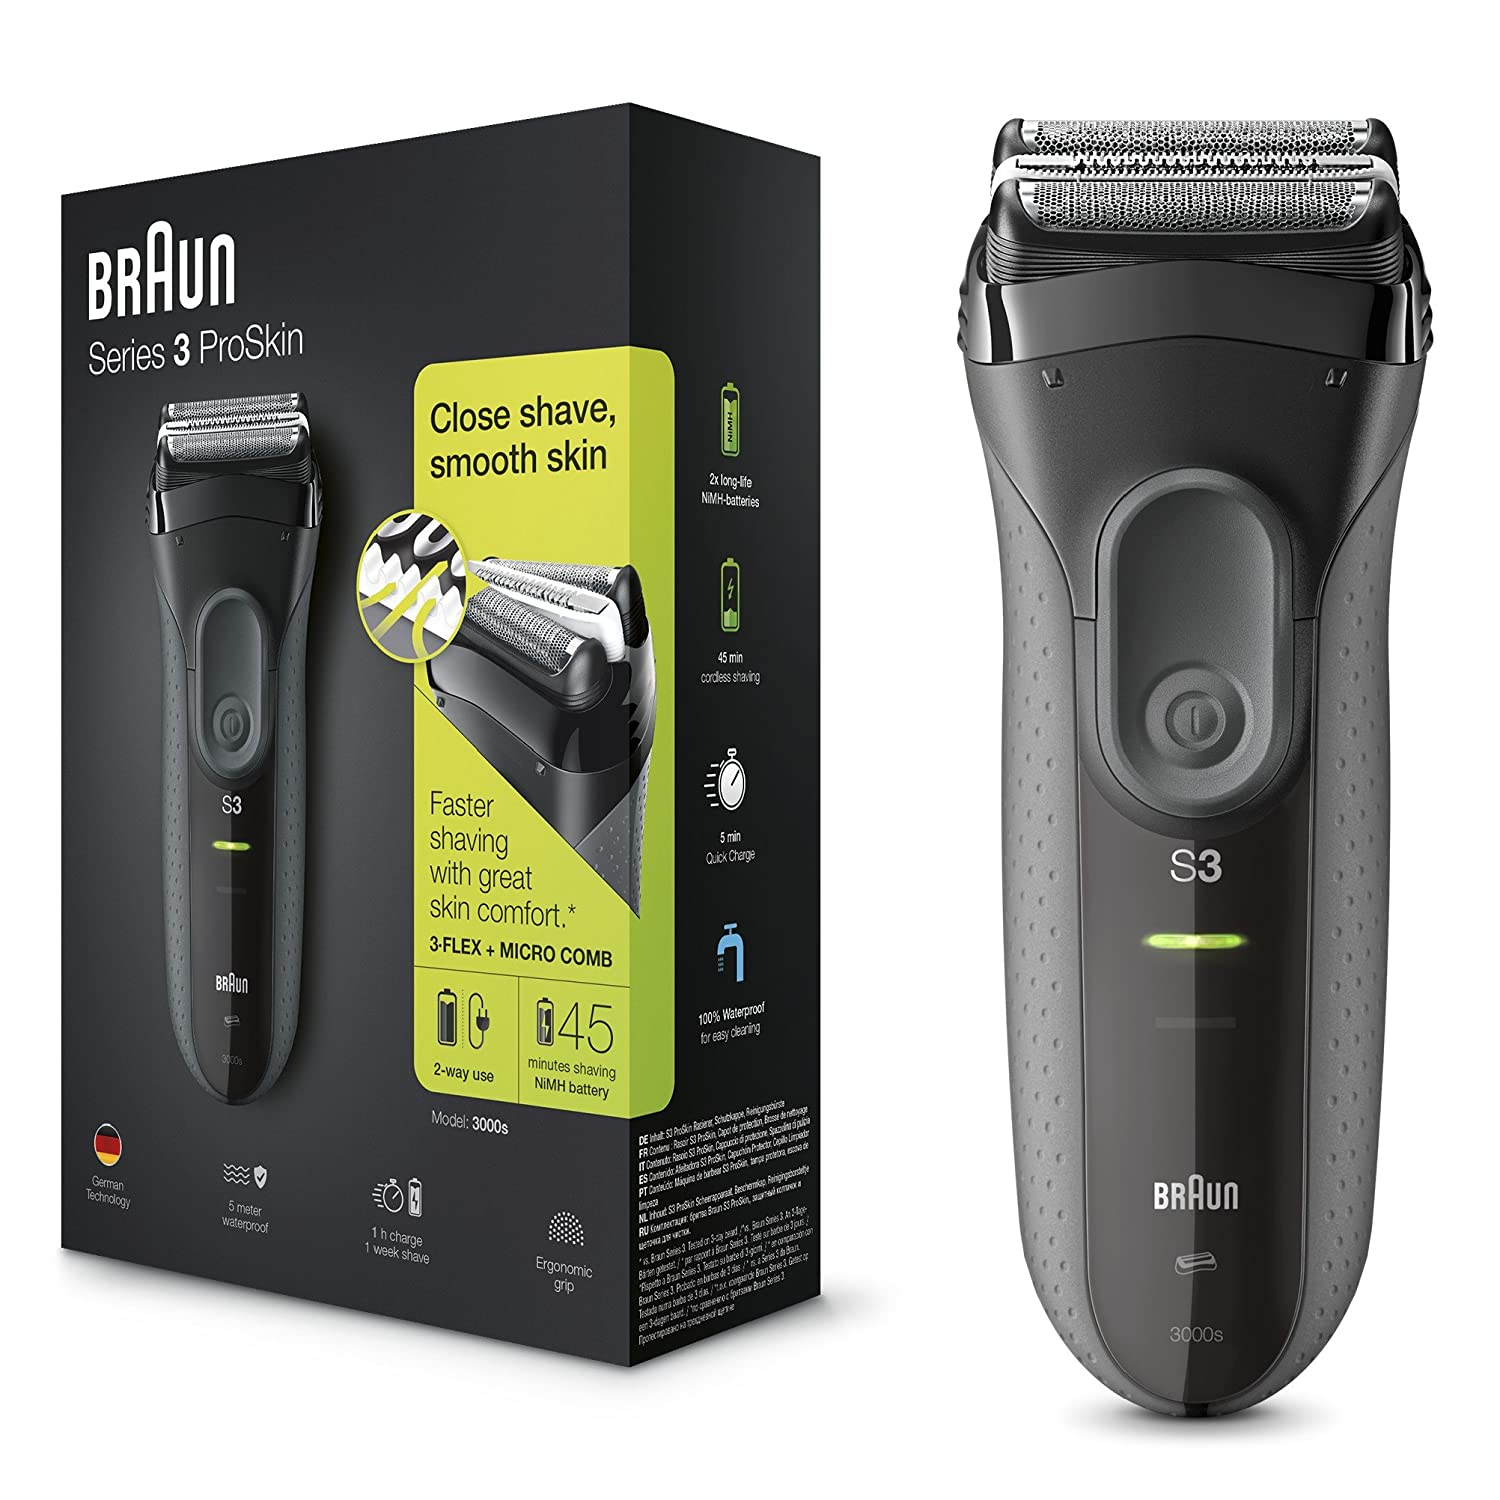 Braun Series 3 ProSkin 3000s Electric Shaver, Electric Razor for Men, Rechargeable and Cordless Shaver, Black Procter & Gamble TRTAZ11A